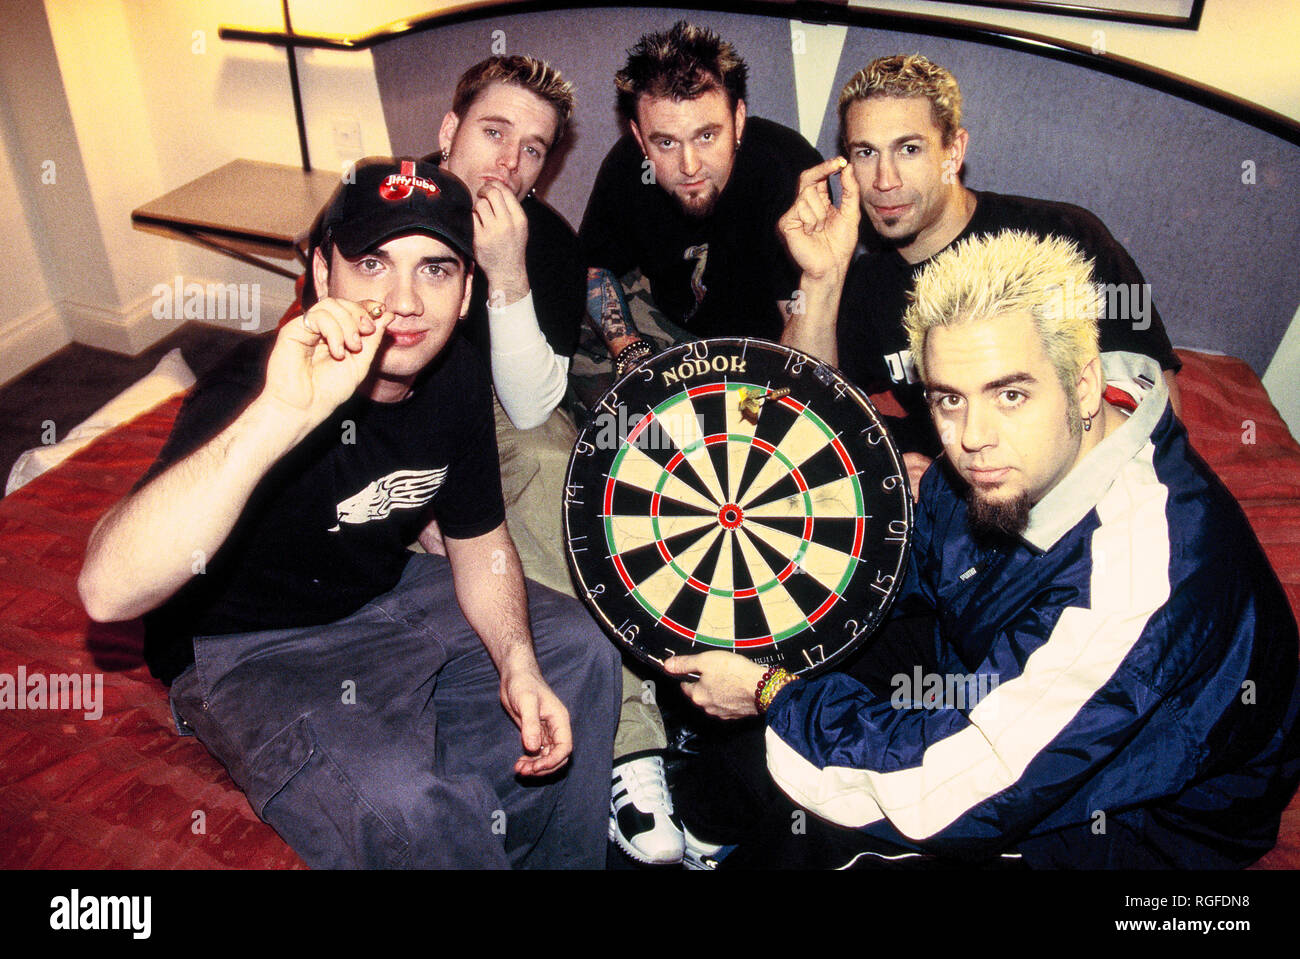 The Bloodhound gang band photographed at La Reserve Hotel in Fulham London, England. Stock Photo